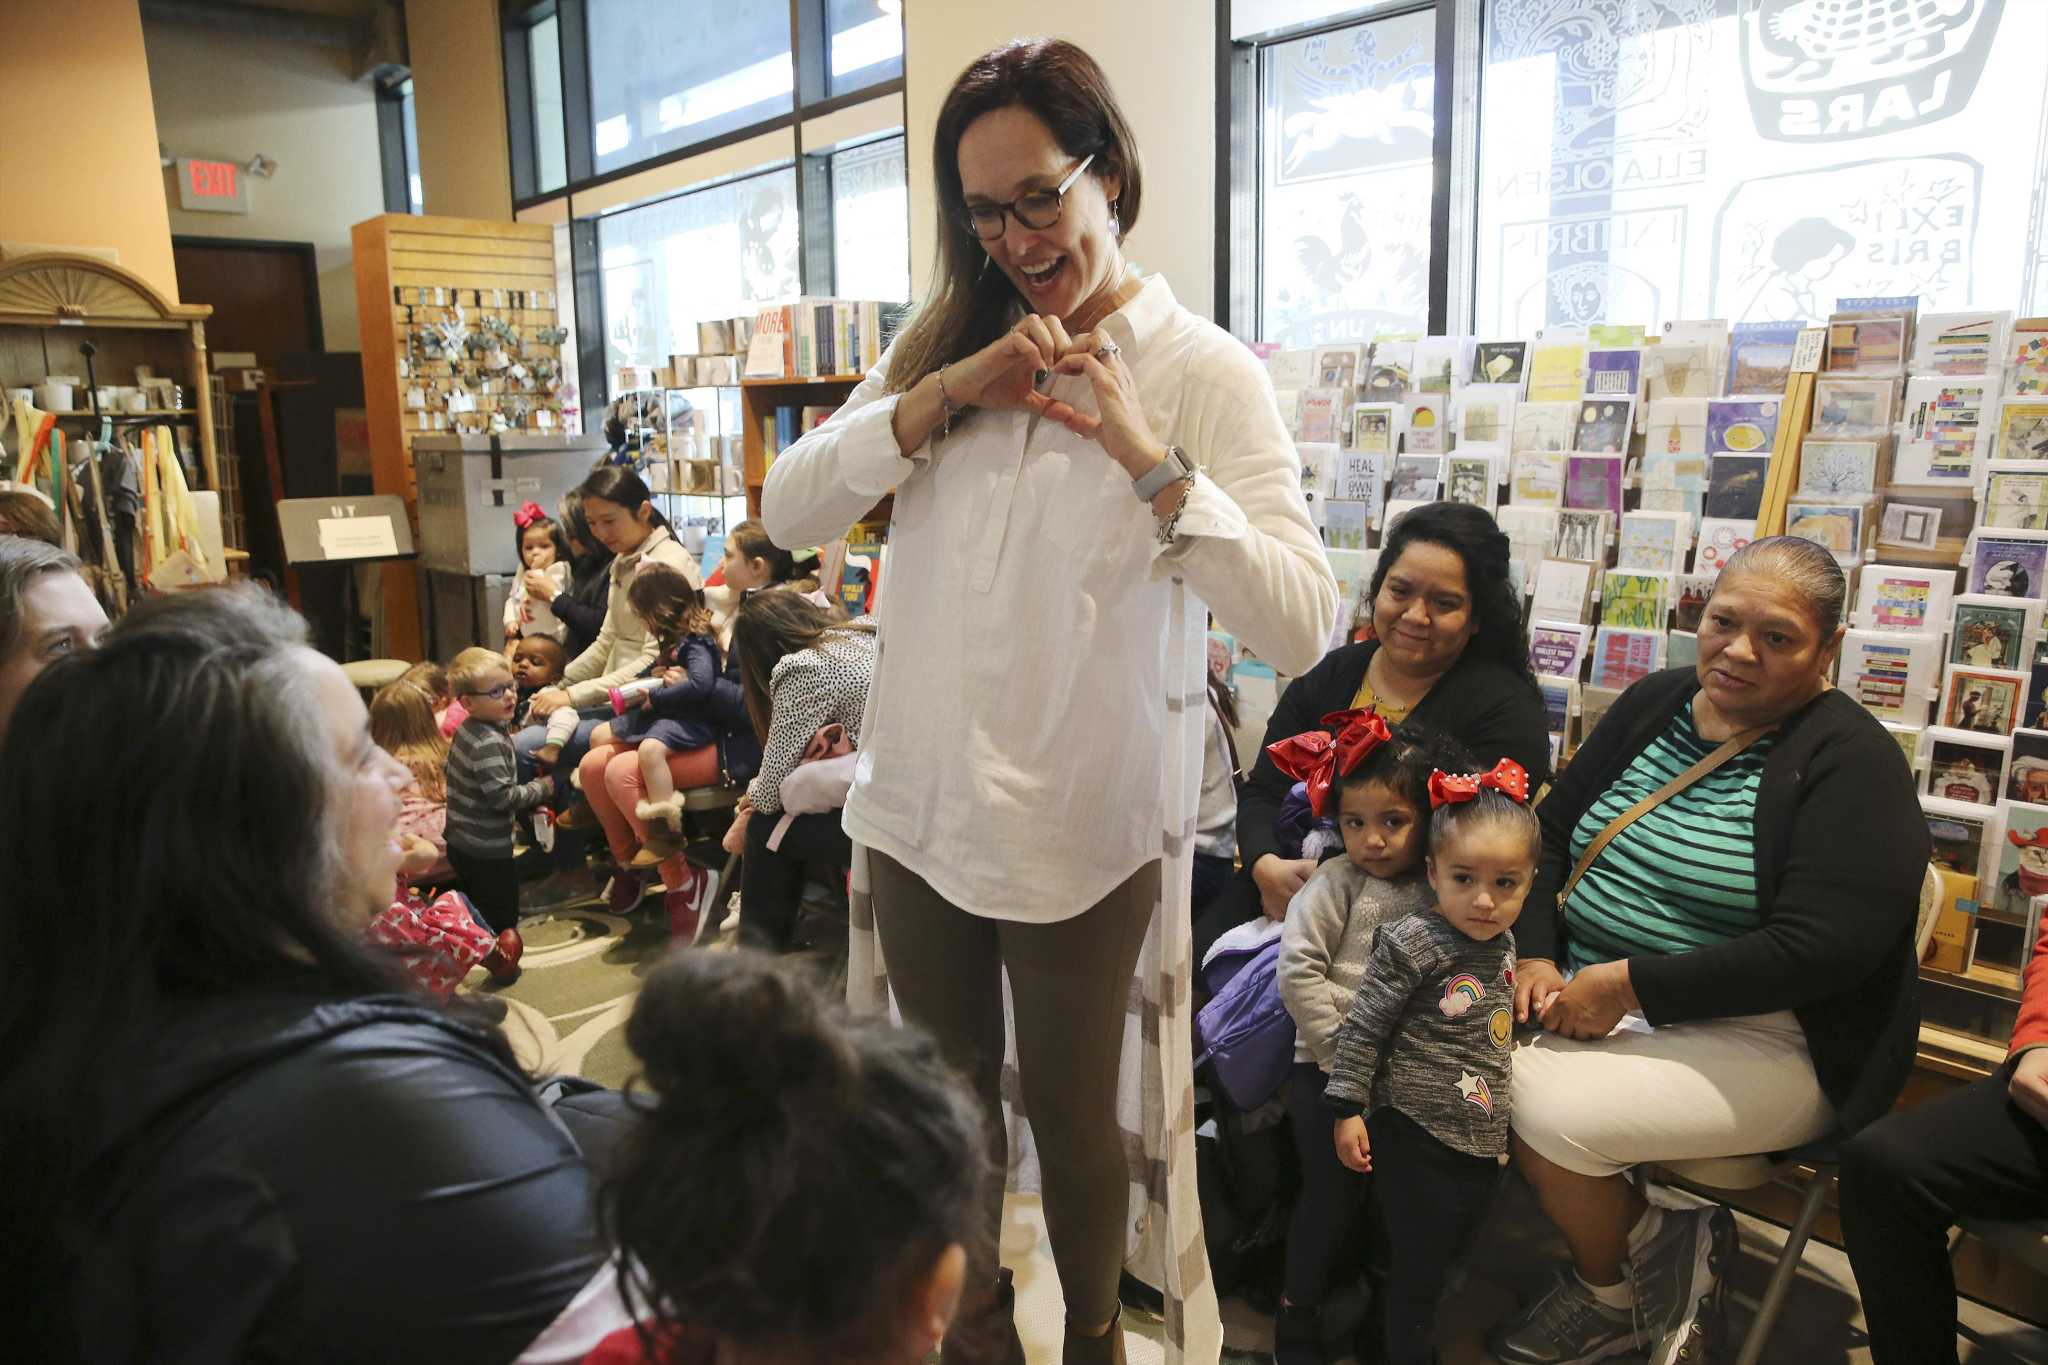 She's San Antonio's best children's storyteller, and she's celebrating two decades at The Twig.